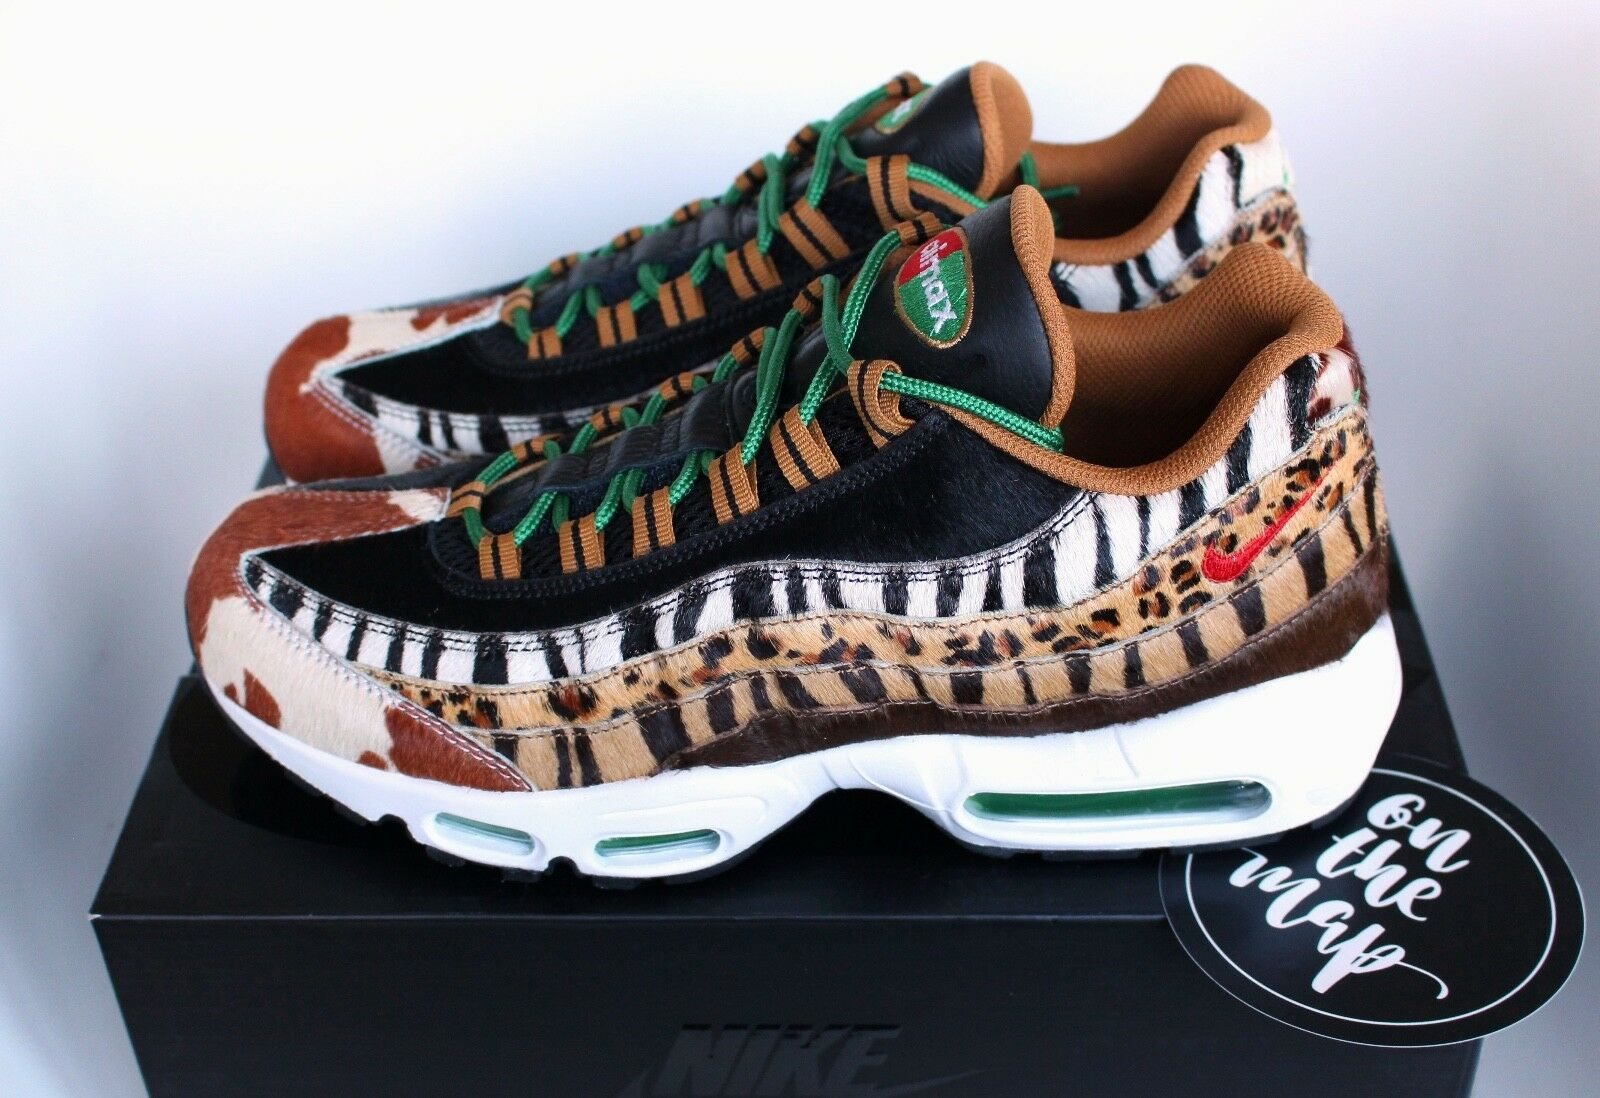 f95bb75648 Nike Air Max Atmos DLX Beast Safari Pack AM95 2018 US Animal 95  nsoesn2842-Athletic Shoes